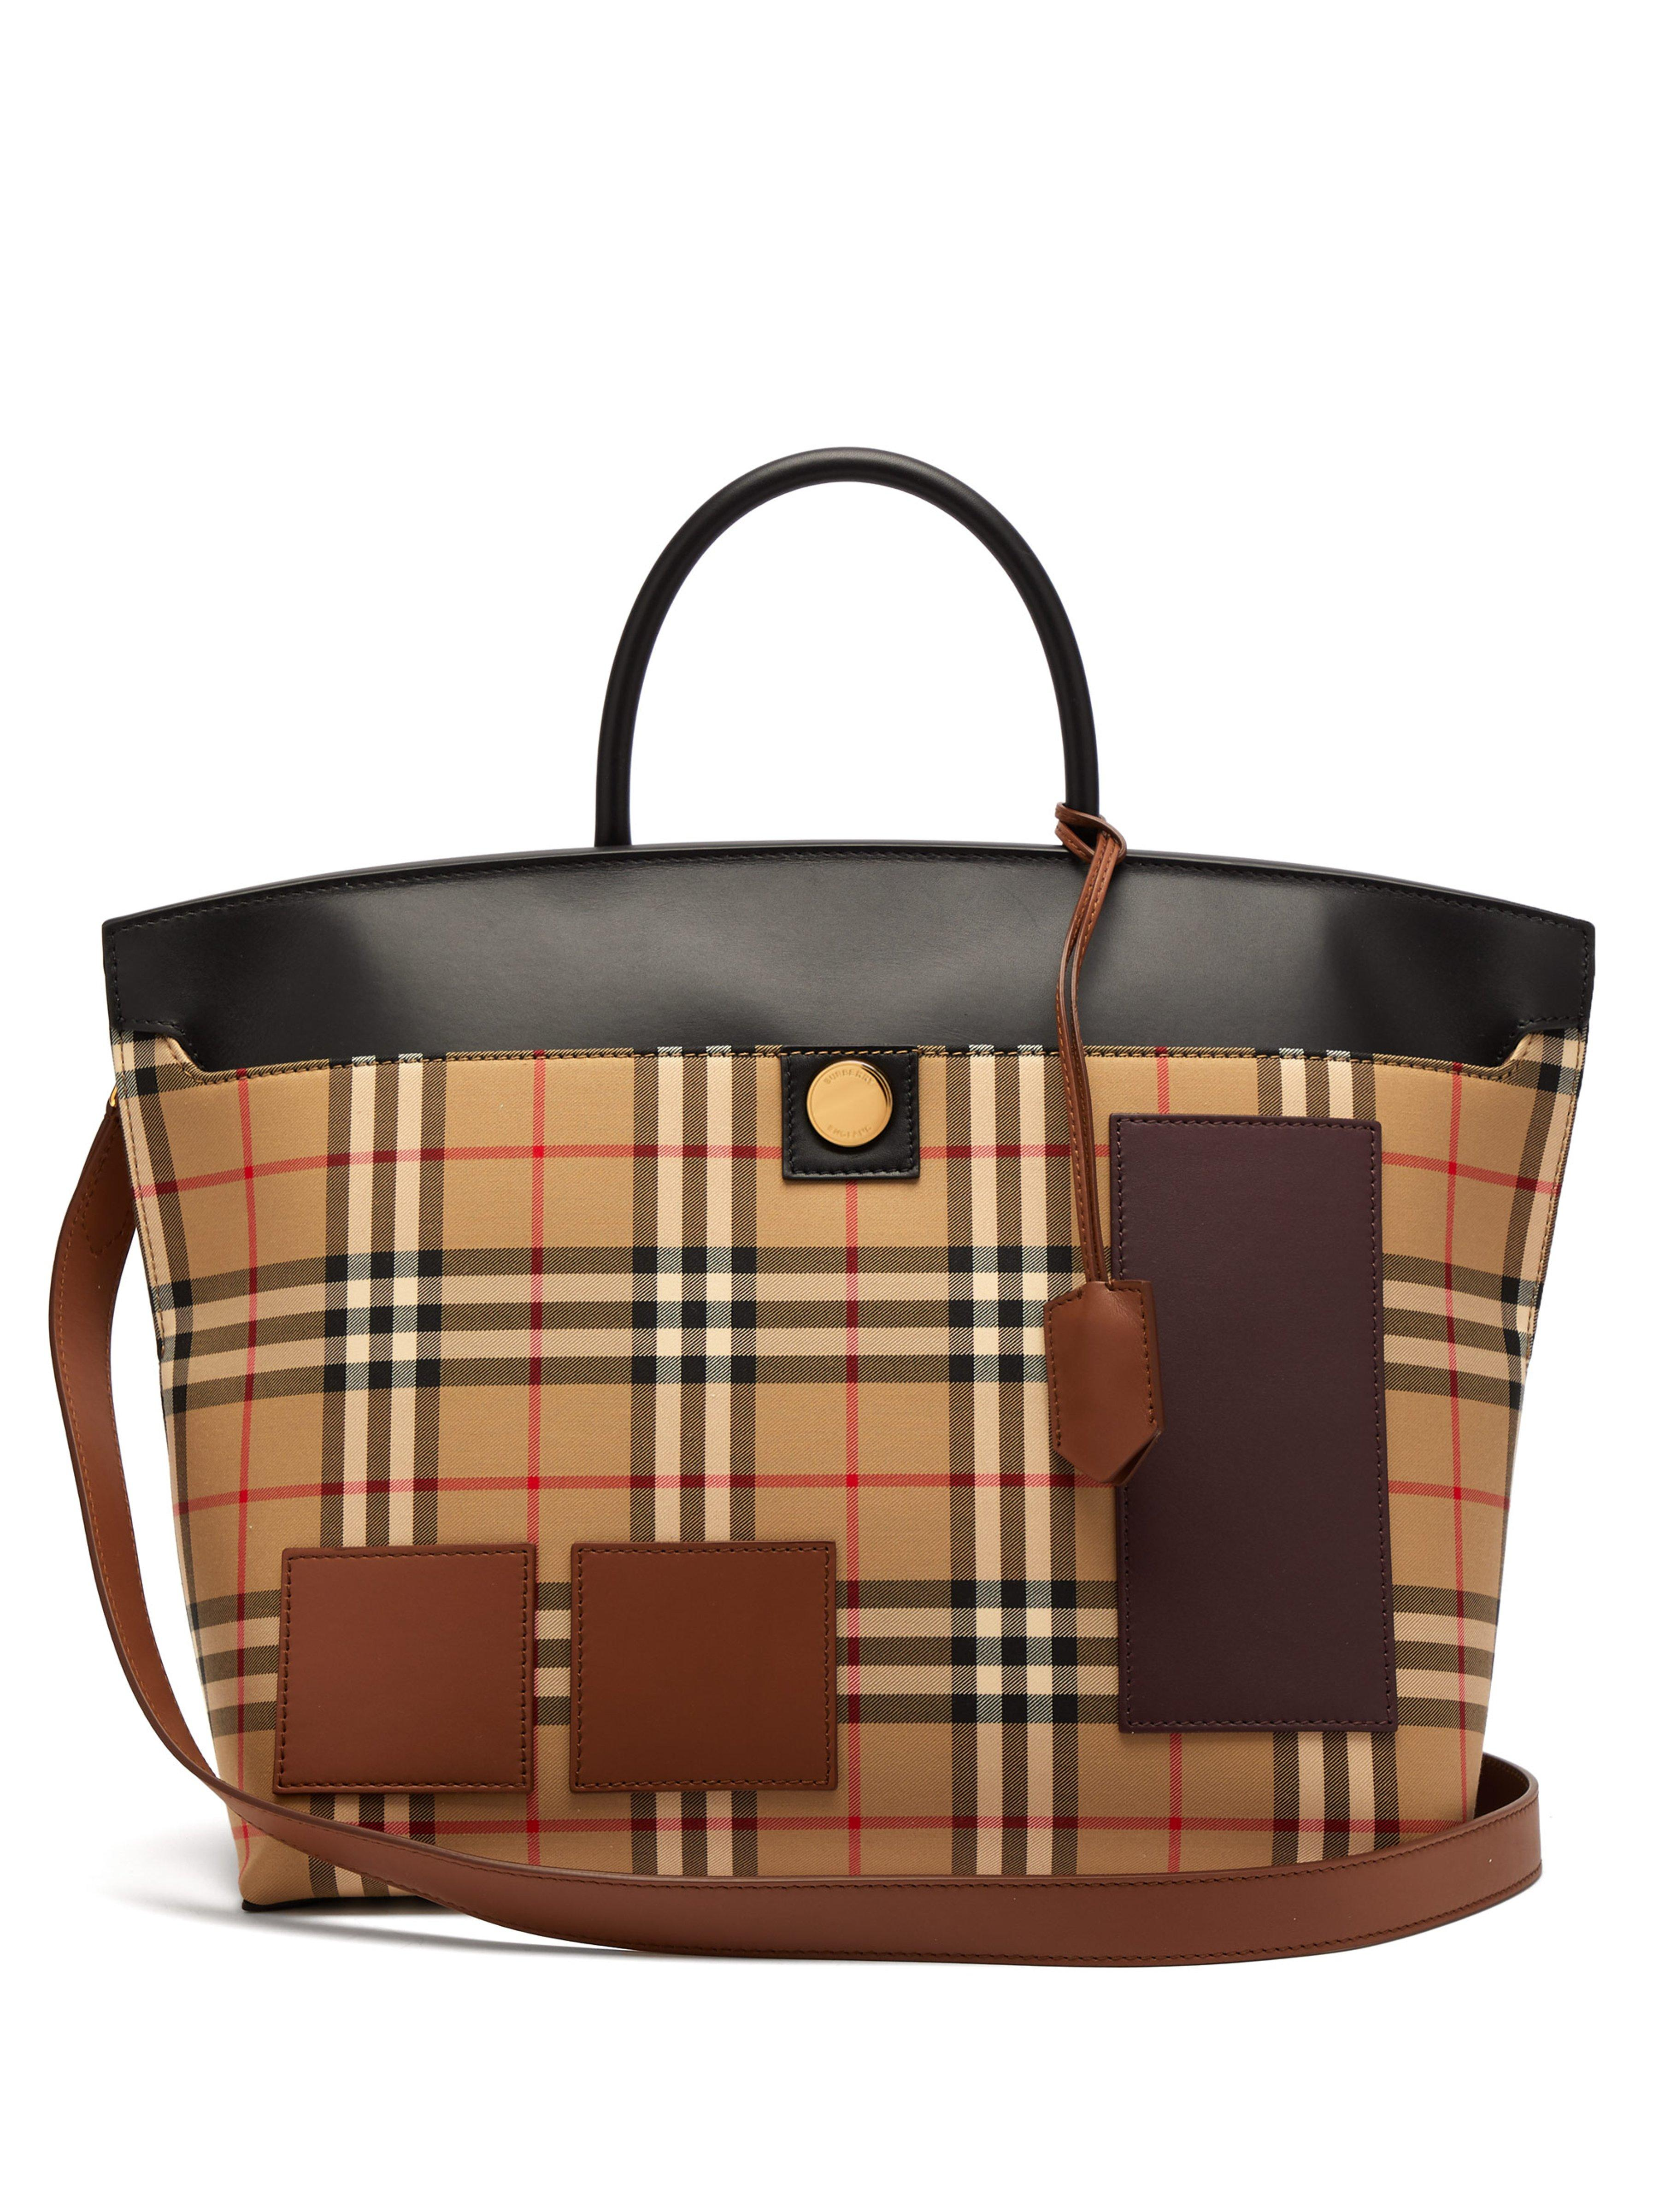 5f4a14f5e17c Burberry Society House Check Canvas Tote Bag in Natural - Lyst